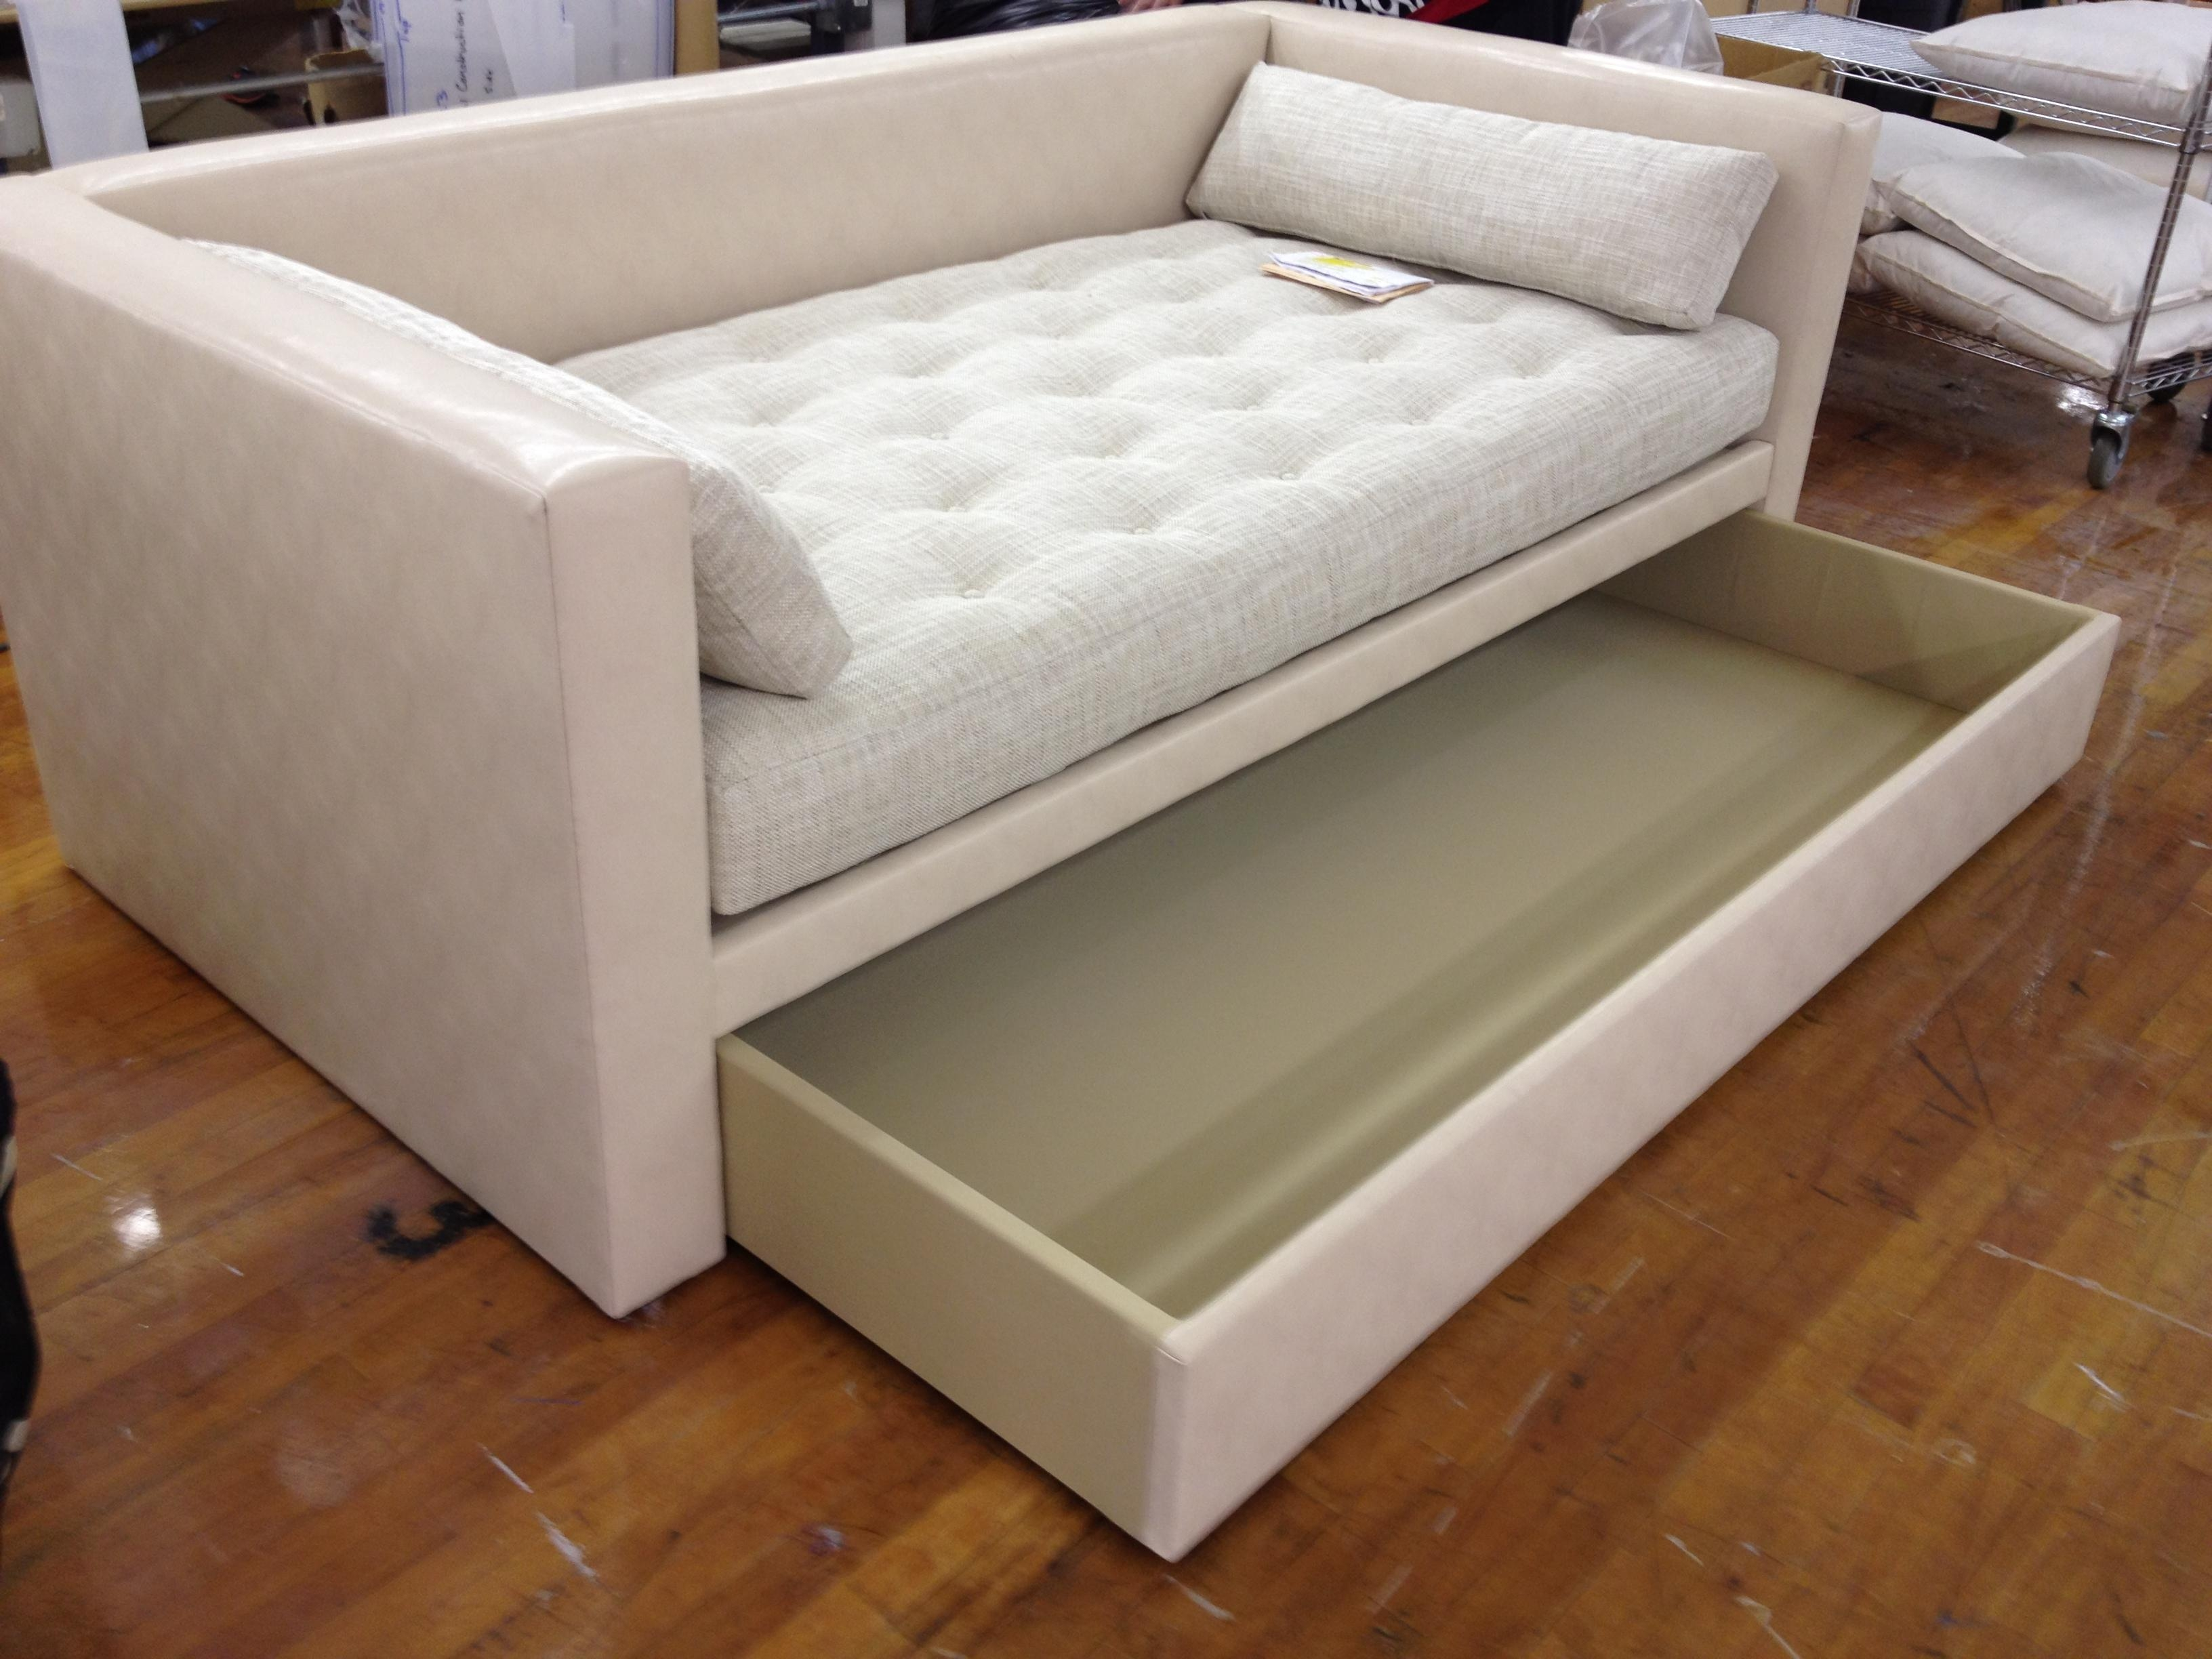 Sofas Center : Sofa Daybed With Trundle Awesome Ikea Intended For Sofas Daybed With Trundle (Image 13 of 20)